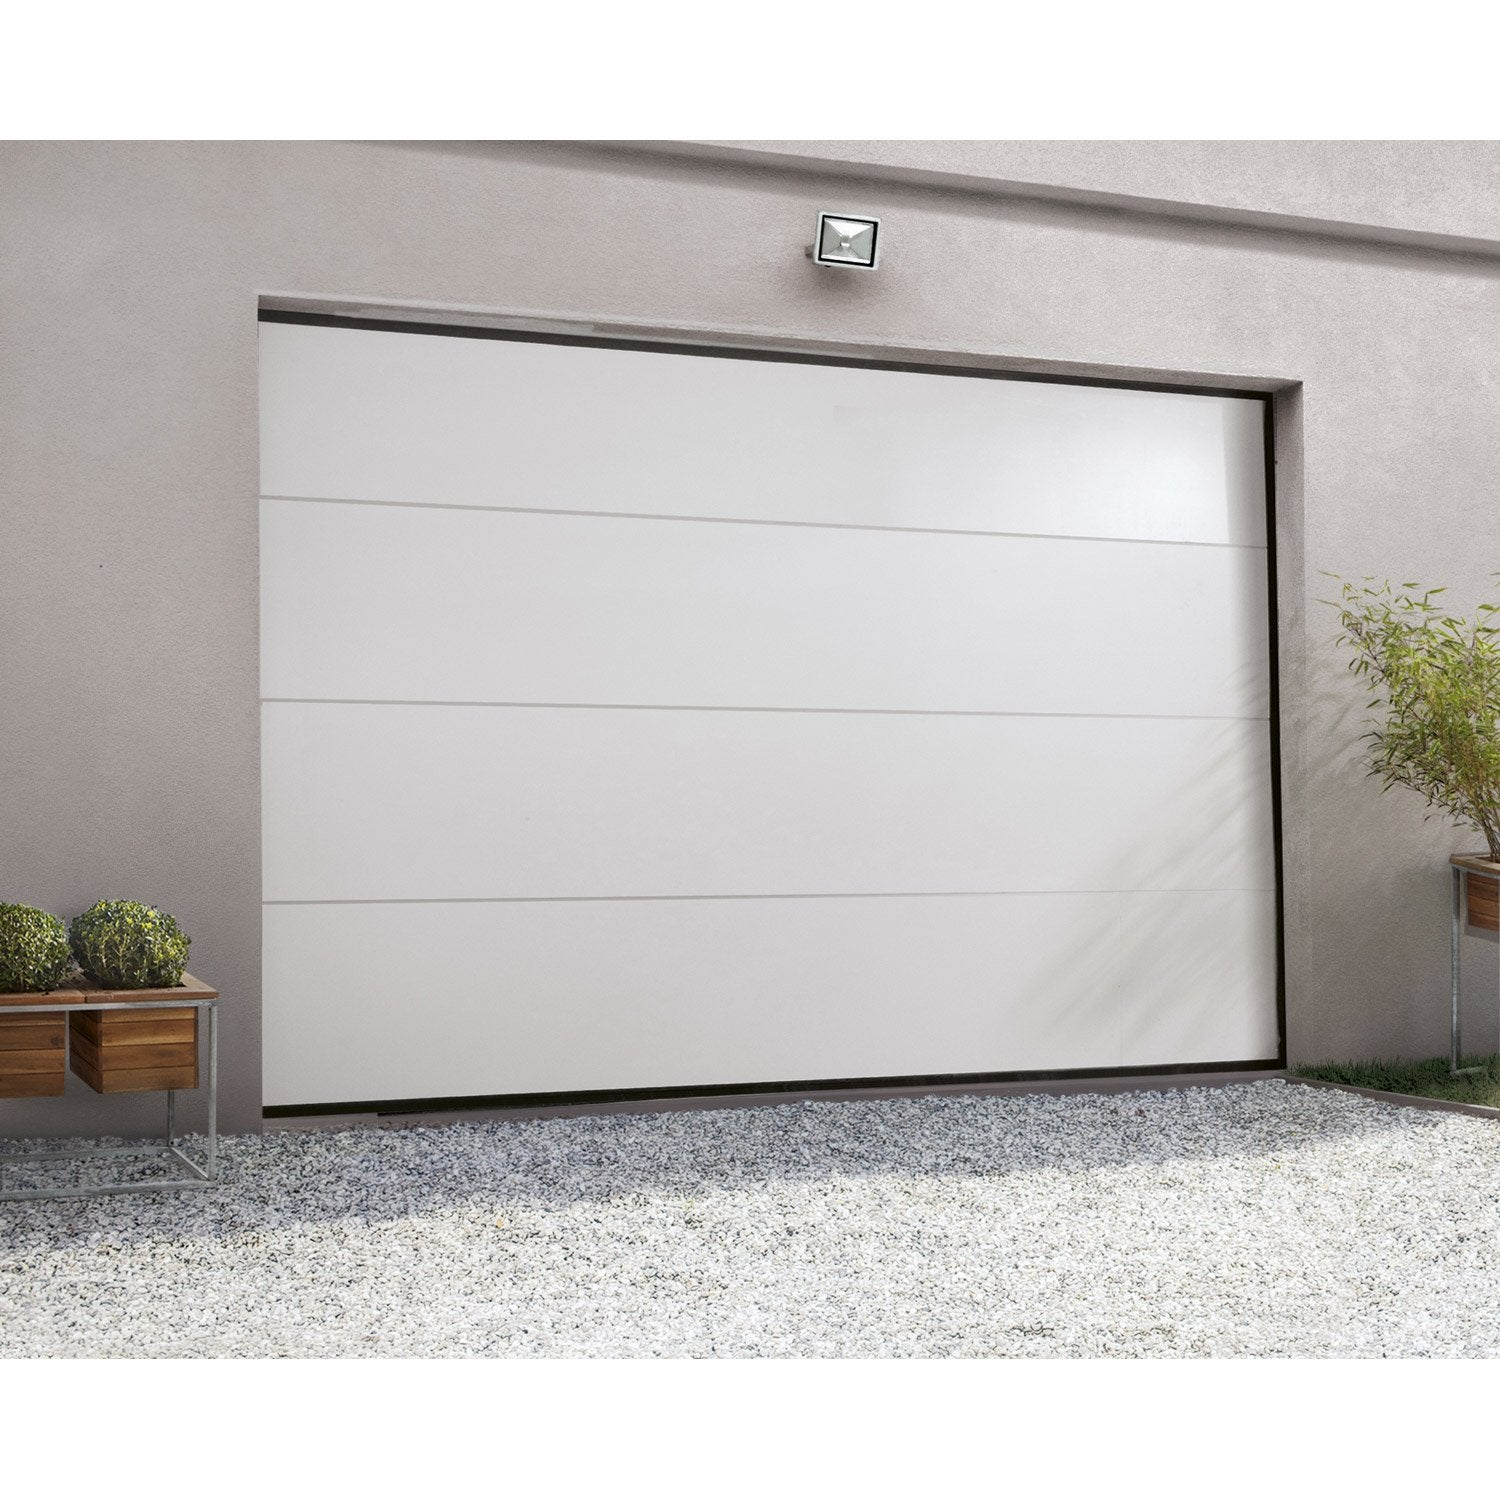 Porte de garage sectionnelle motoris e artens essentiel h for Porte garage 5mx2m